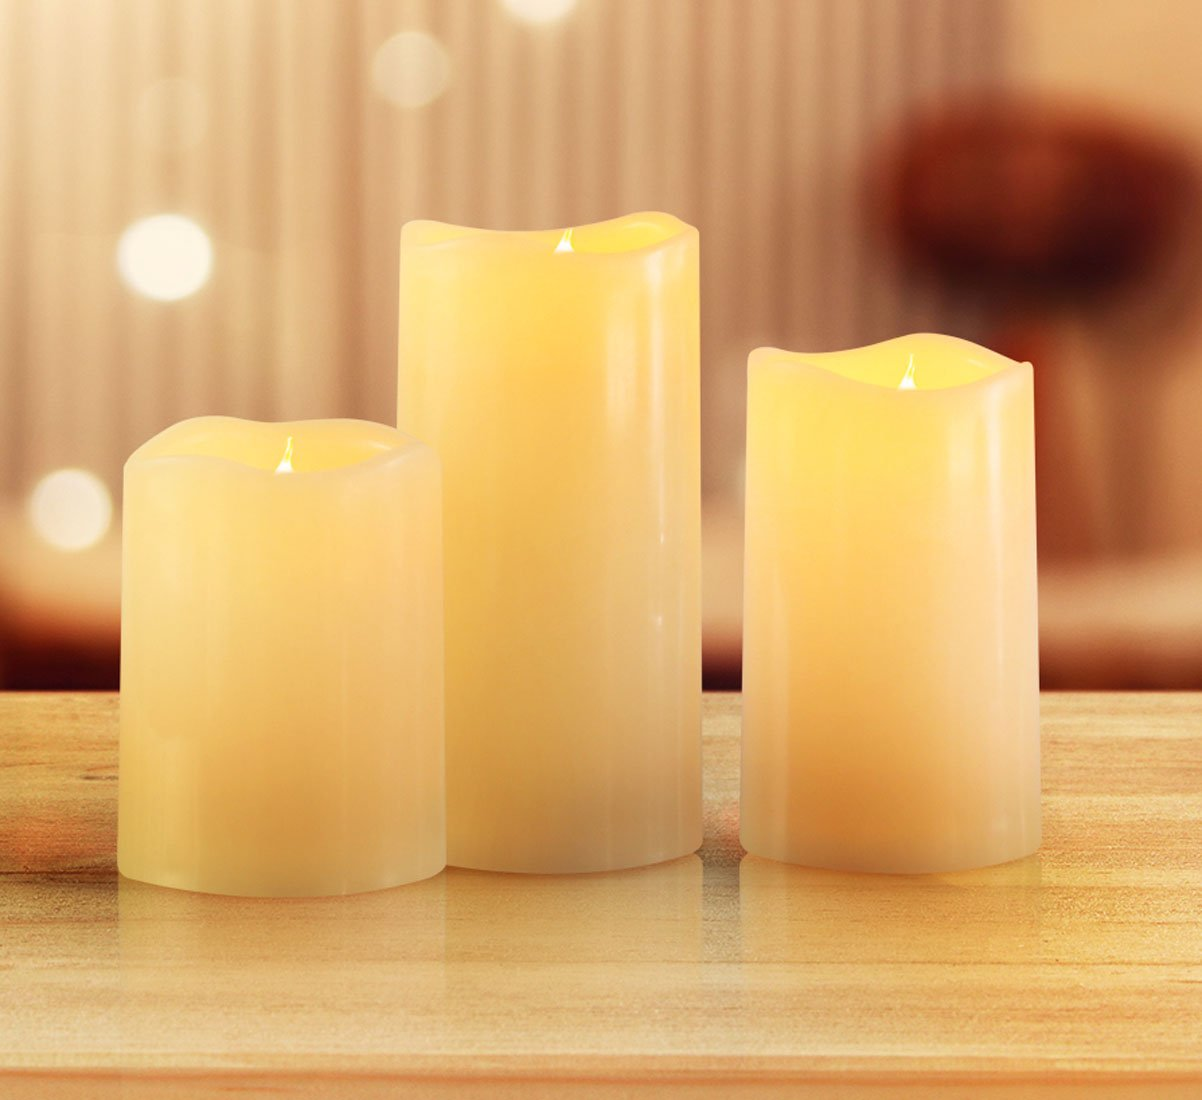 KMSdeco Outdoor Waterproof LED Candles Indoor Home Decor Battery Operated Flameless Candles with Timer, Set of 3(4'' 5'' 6'') Ivory